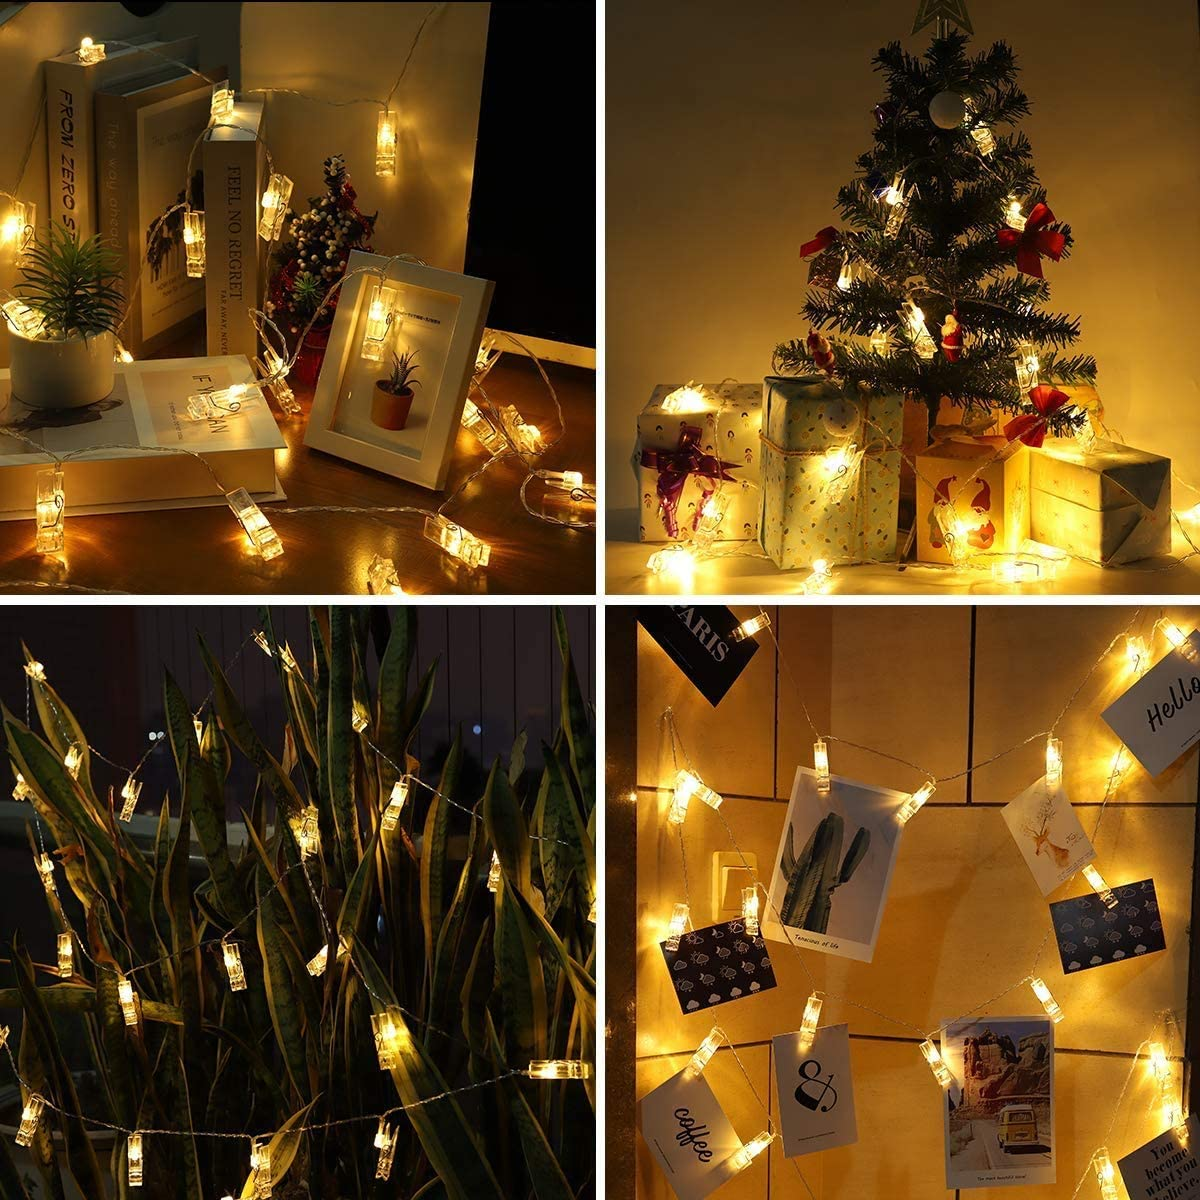 12 LED Photo Clip Lights   Adecorty 12 Modes USB Powered Photo Clips String  Lights with Remote & Timer, Gifts for Teen Girls Bedroom Decor Christmas ...